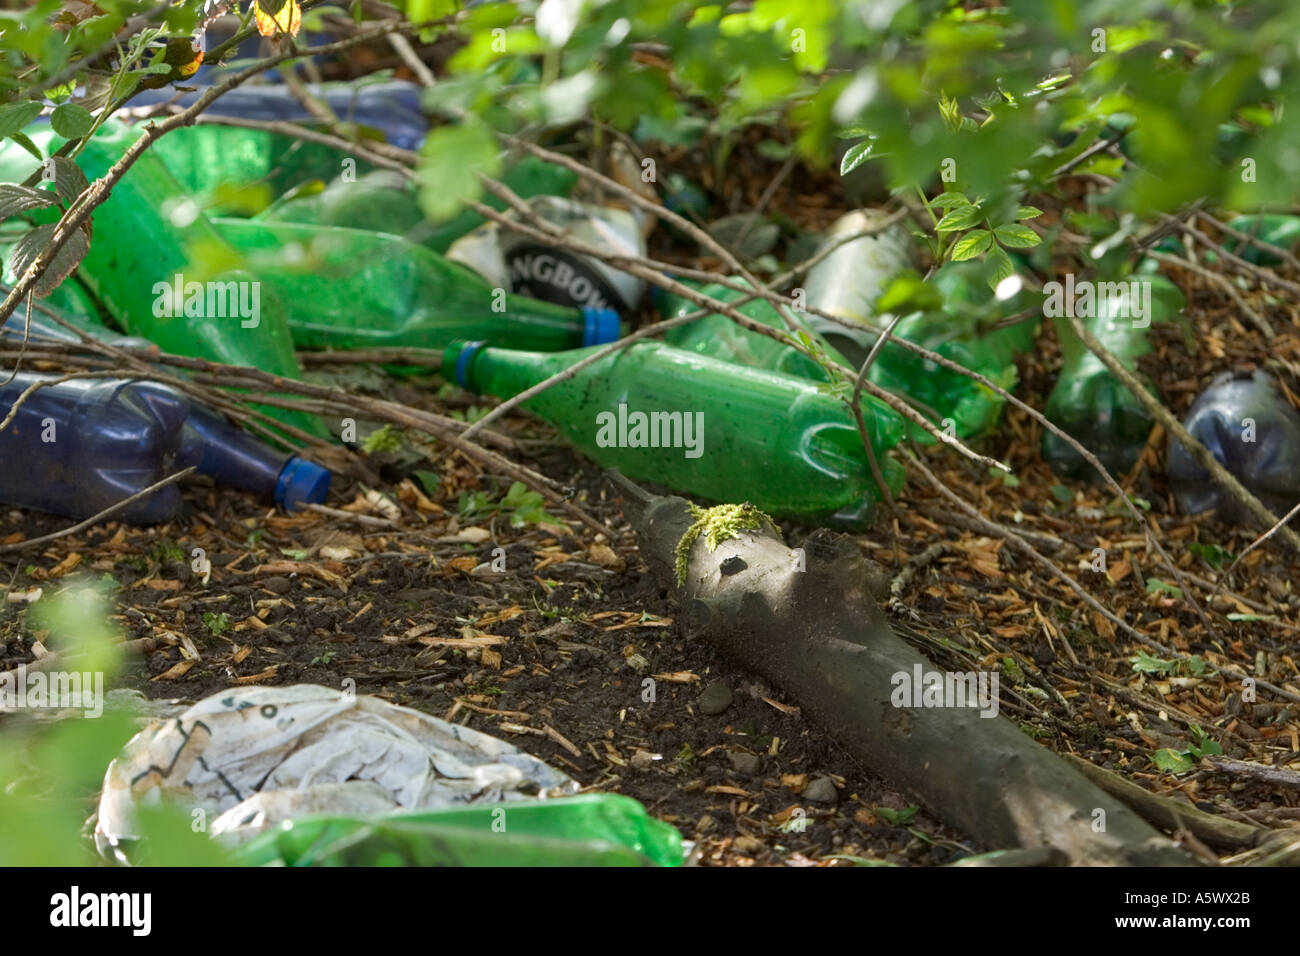 Plastic bottles rubbish thrown away dumped under hedgerow on canal towpath in radcliffe bury lancashire uk Stock Photo